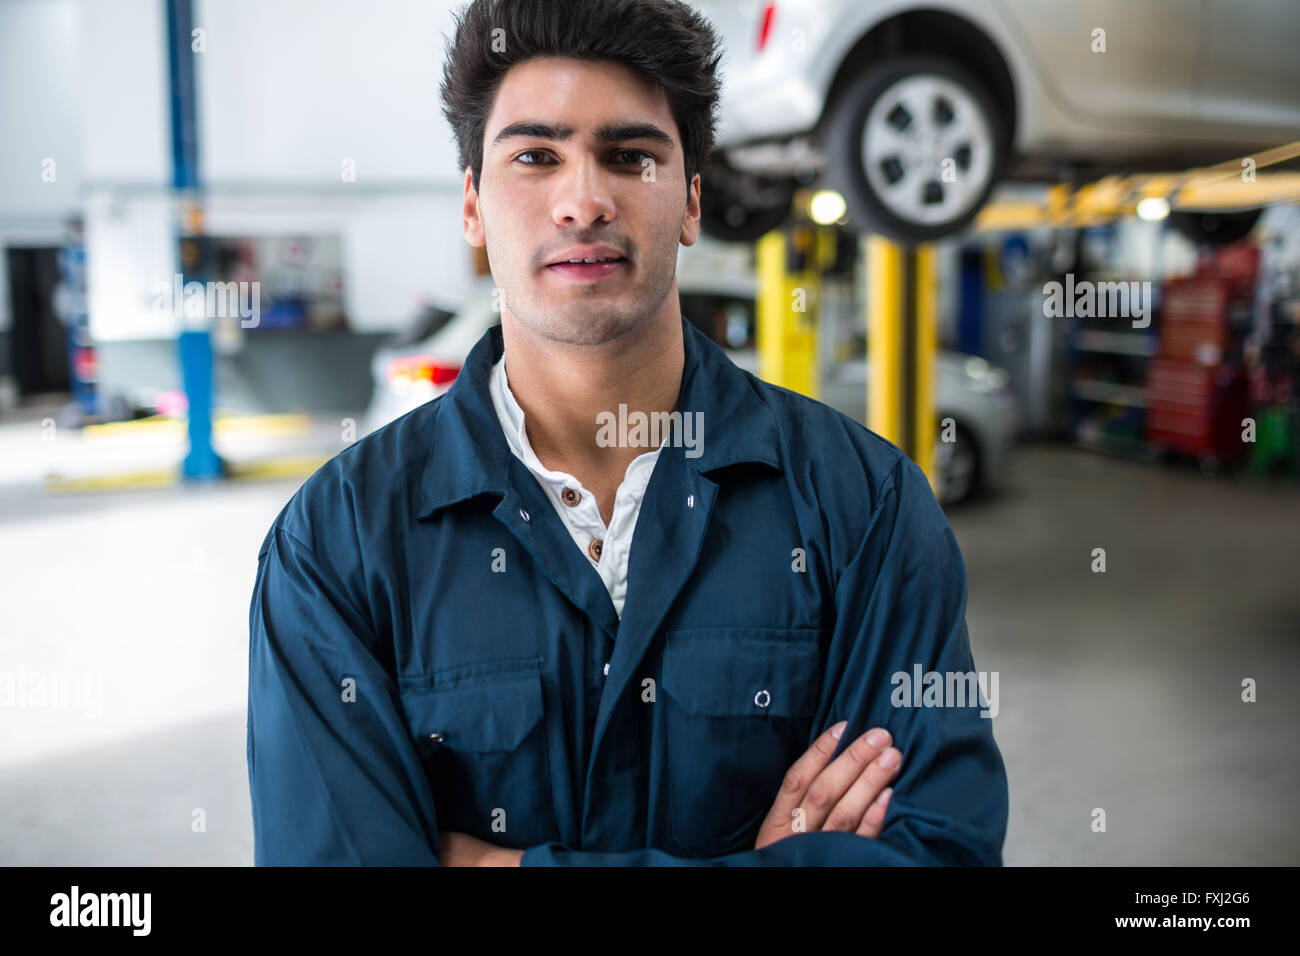 Mechanic with arms crossed - Stock Image